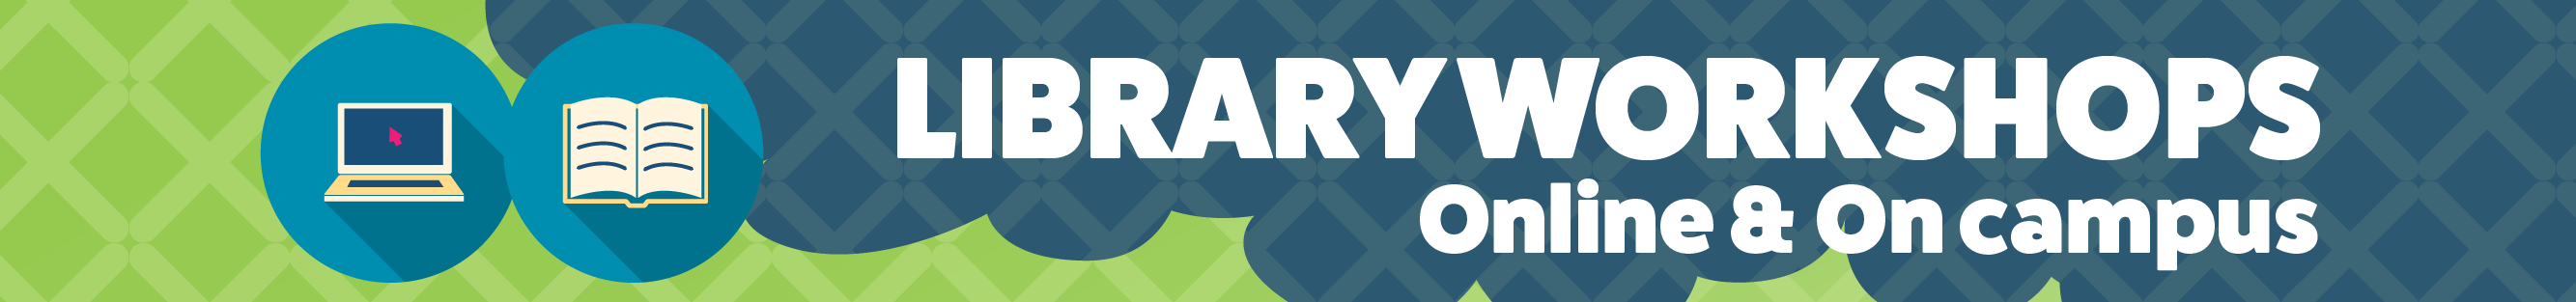 Library Workshops online and on campus